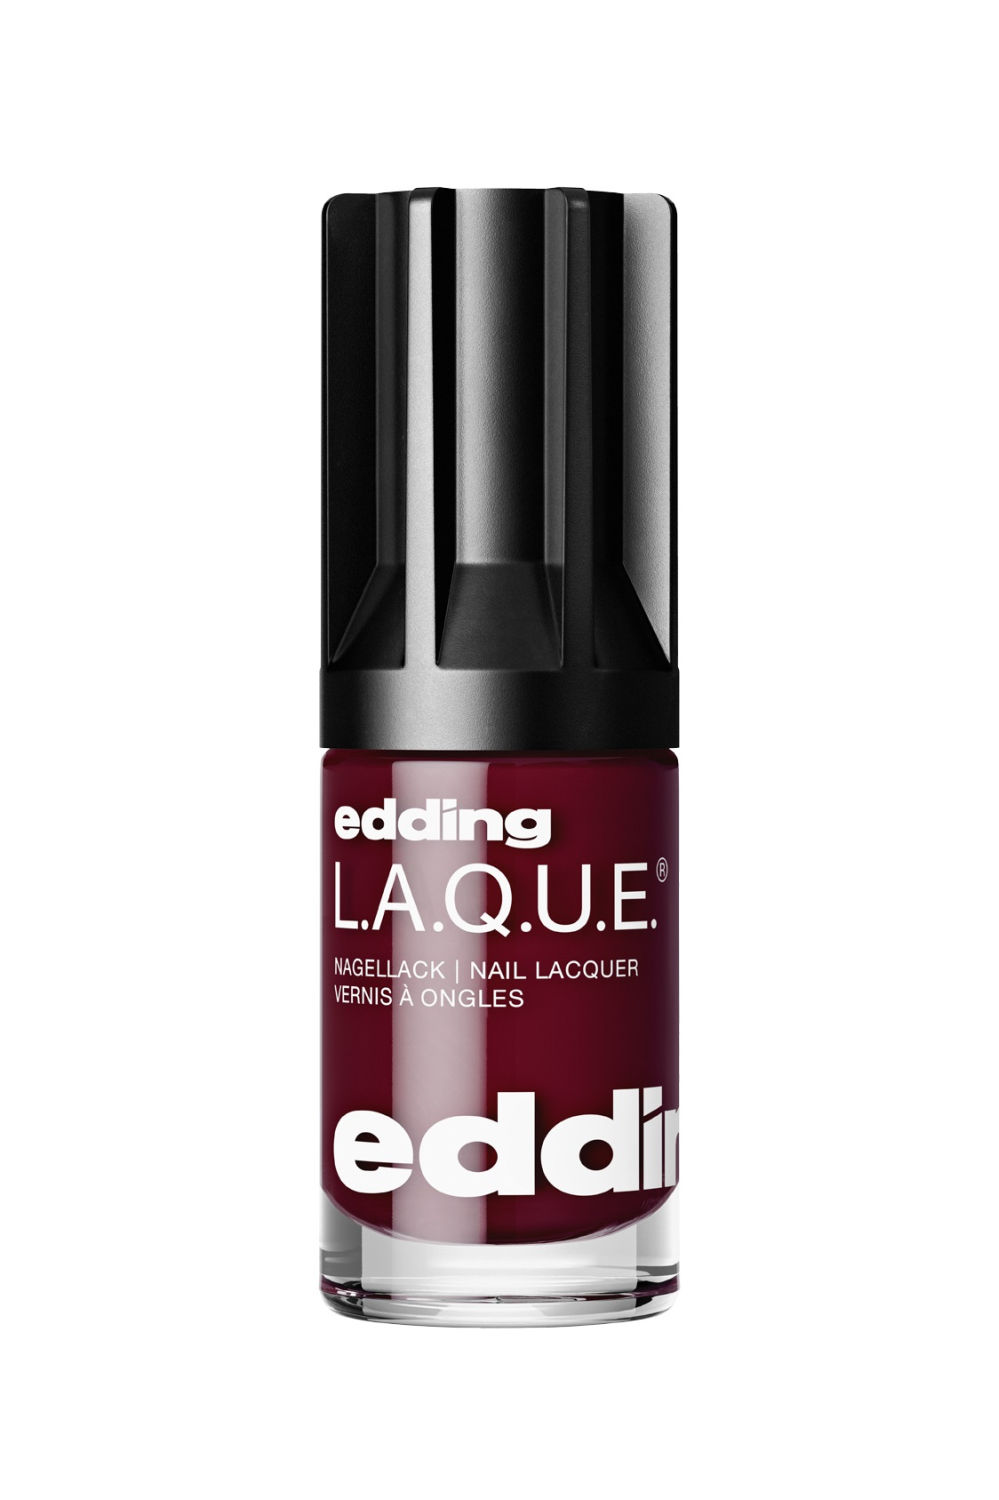 edding L.A.Q.U.E. edding LAQUE daily dark red